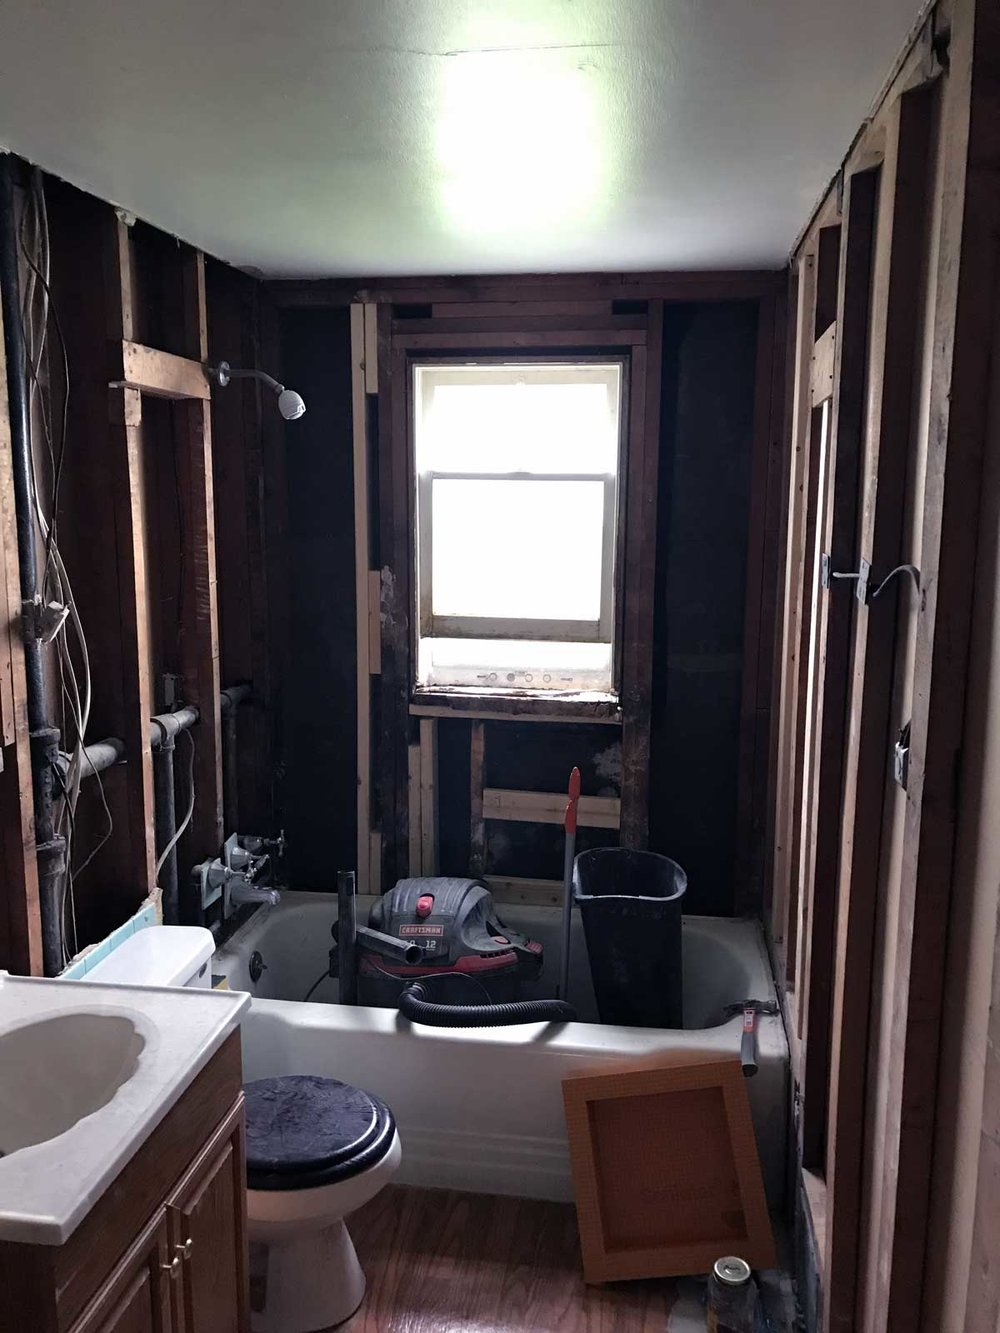 15-Day-Bathroom-Renovation-09.jpg